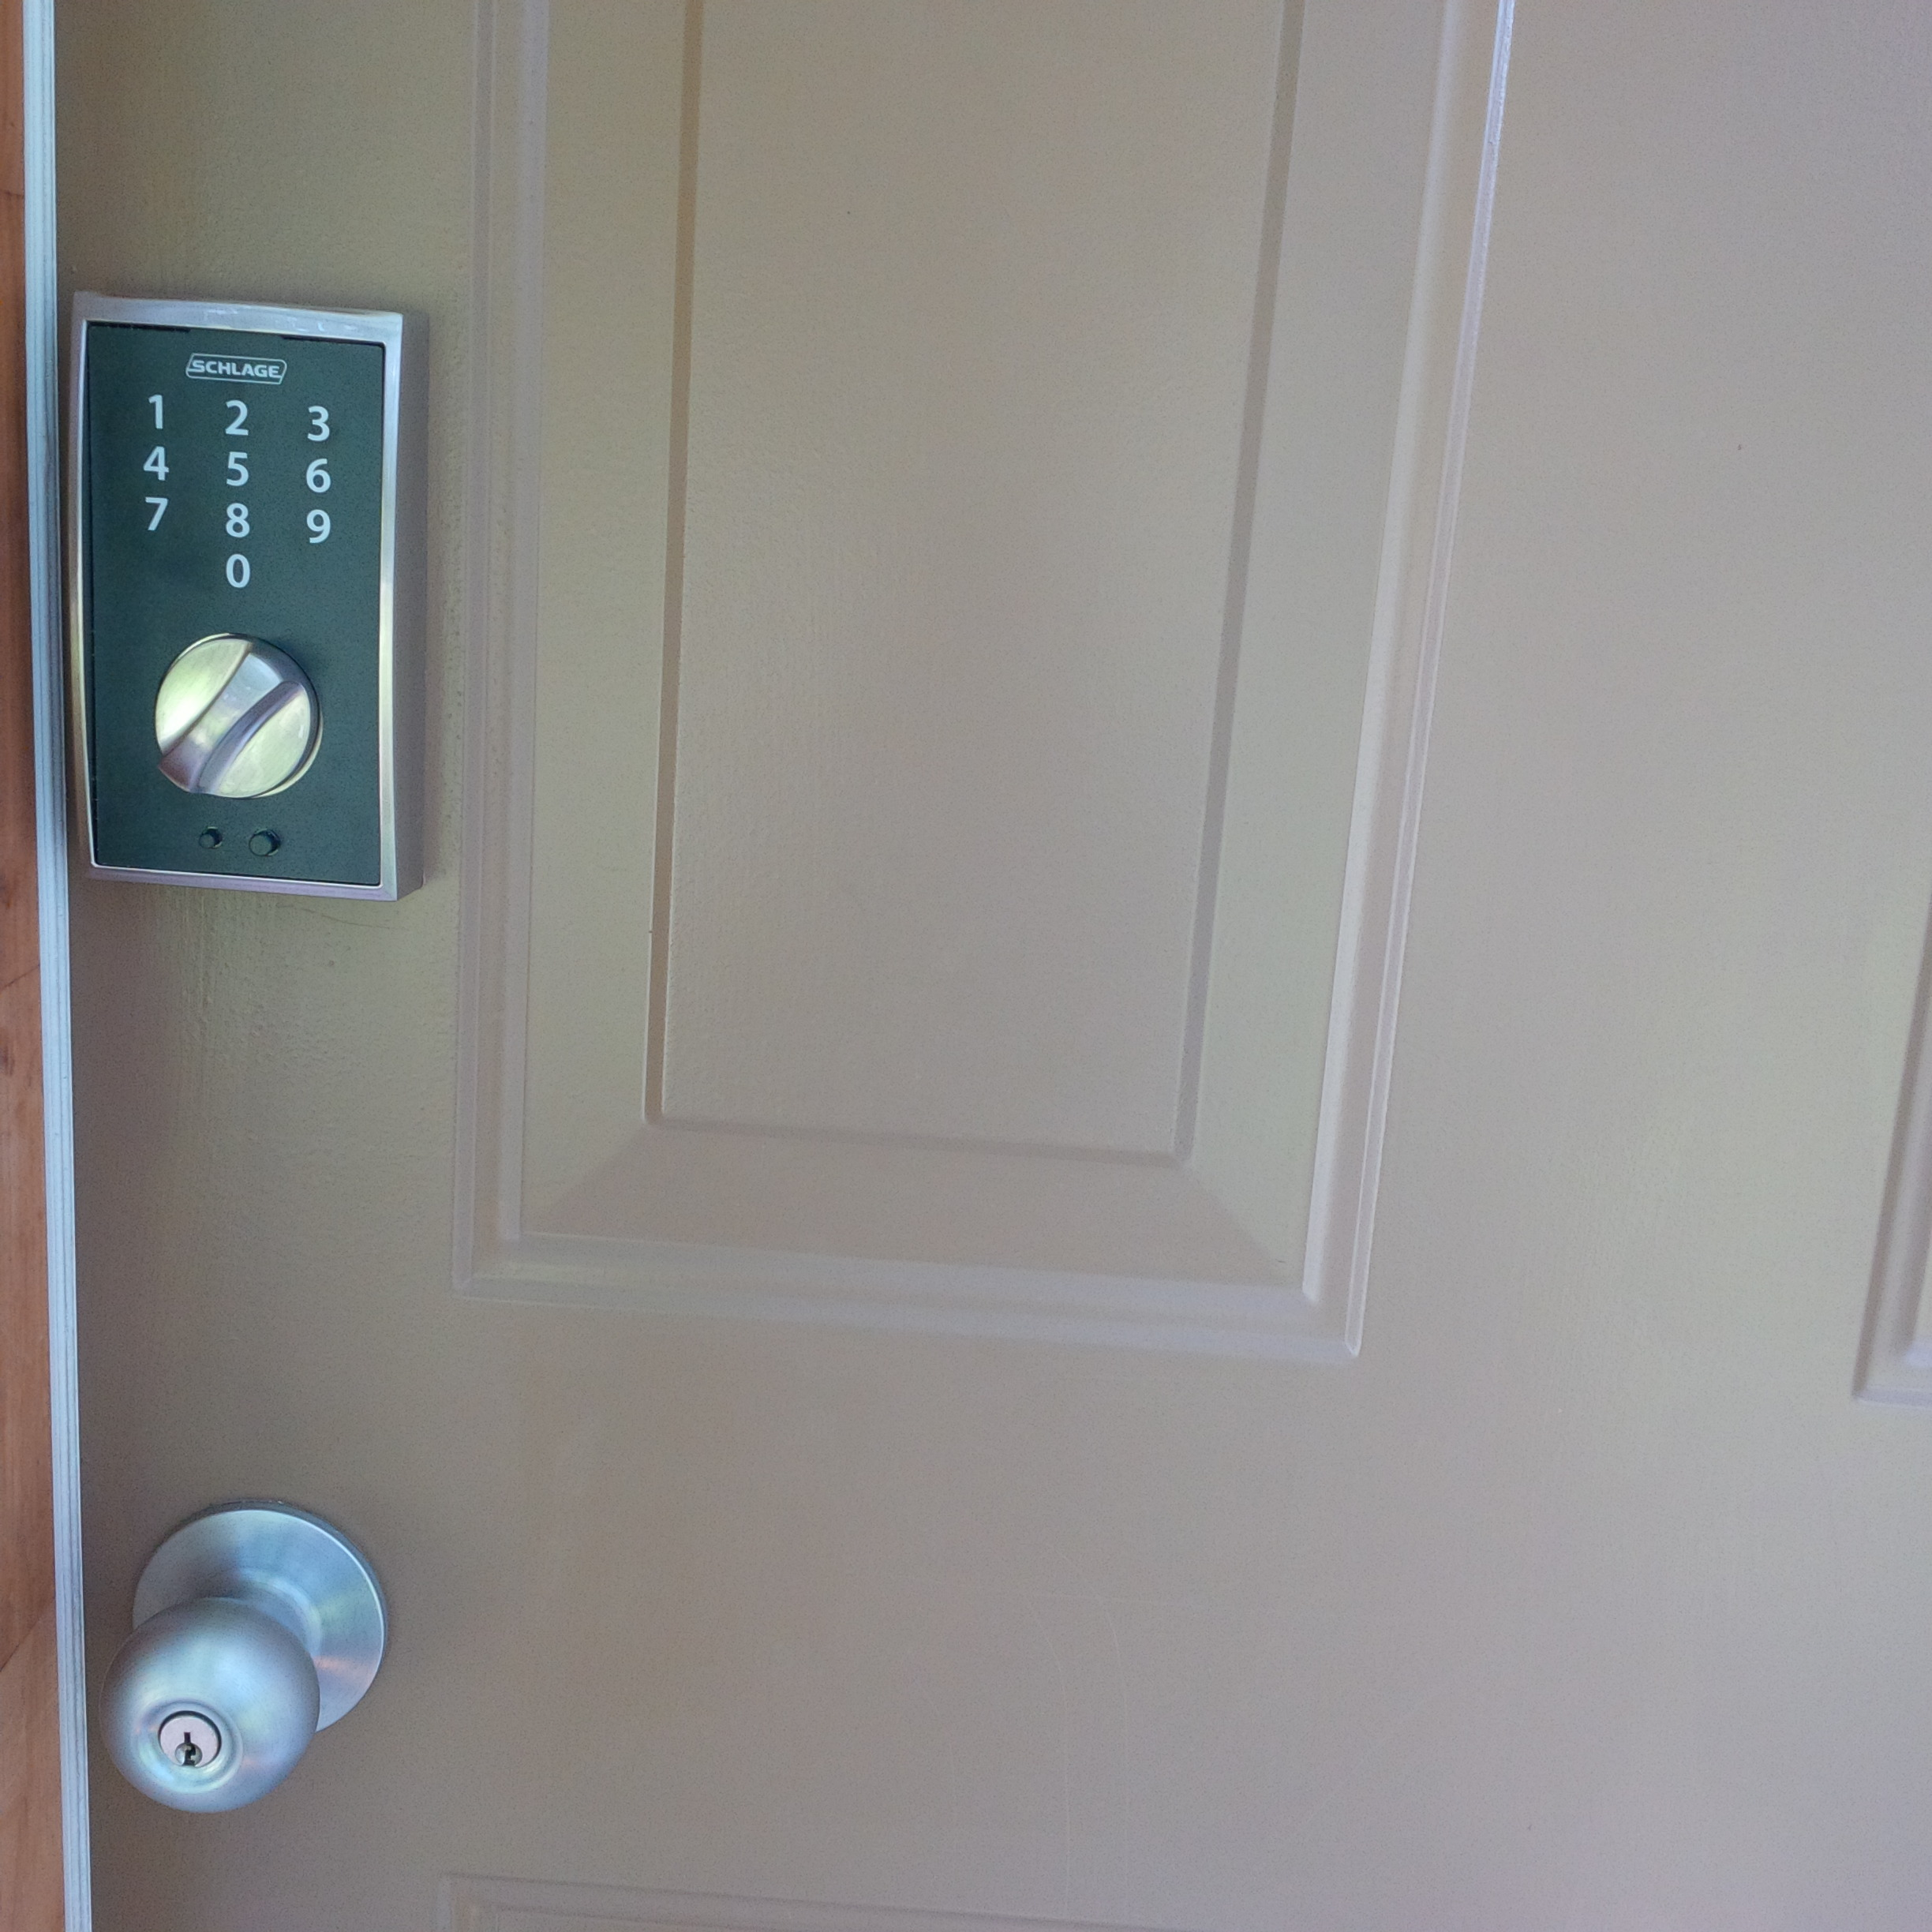 Schlage Touch Keyless Entry Lock Reviews In Home Or Indoor